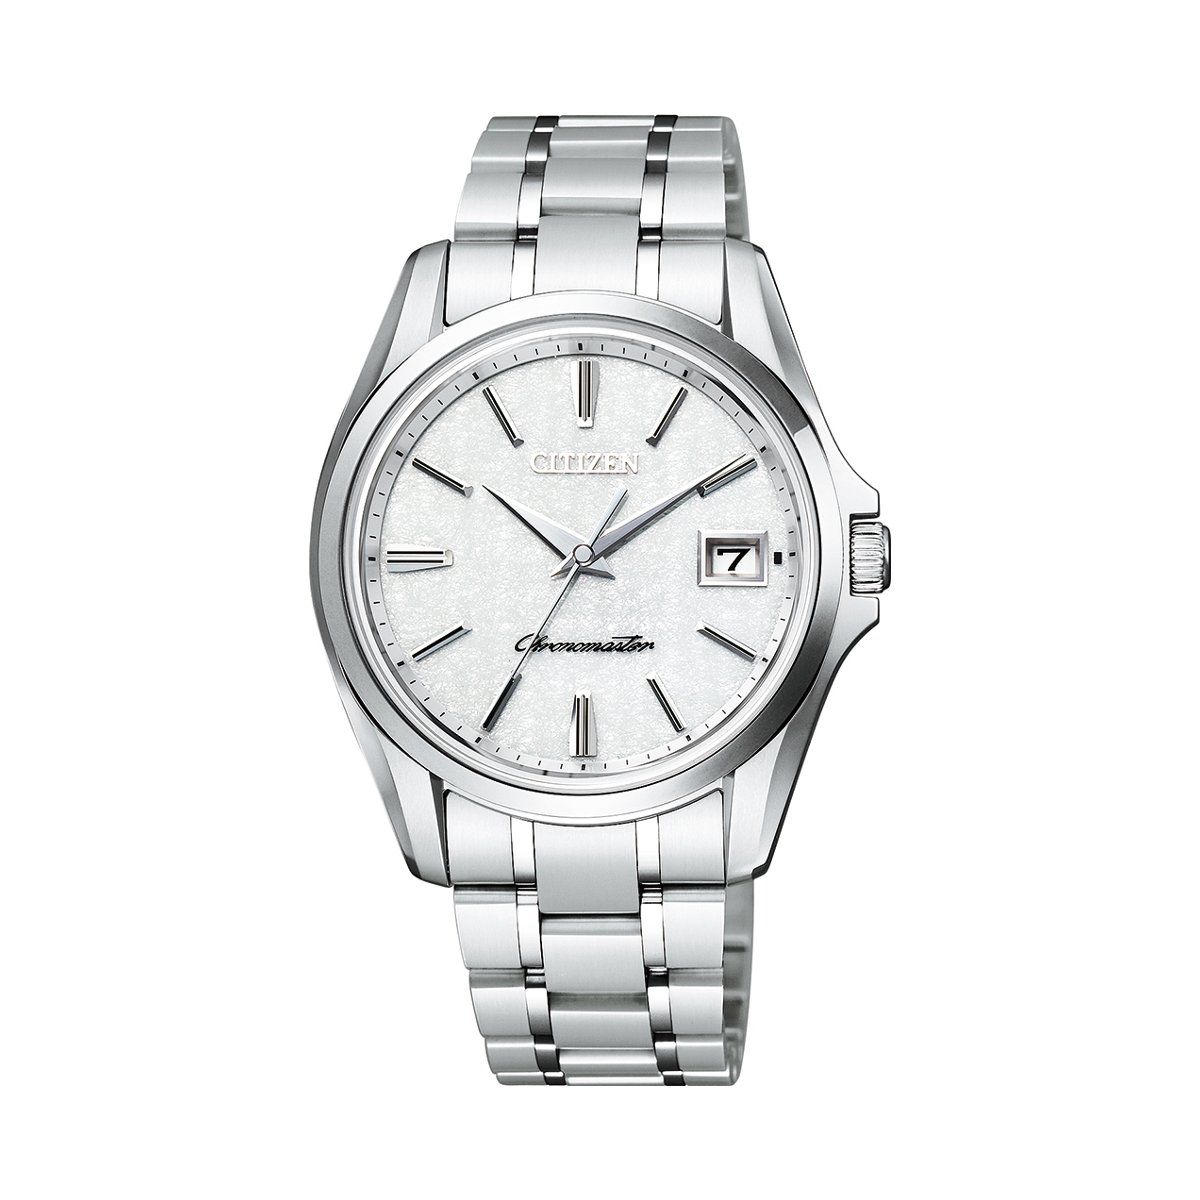 Montre THE CITIZEN Chronomaster Cadran washi AQ4020-54Y vue 1